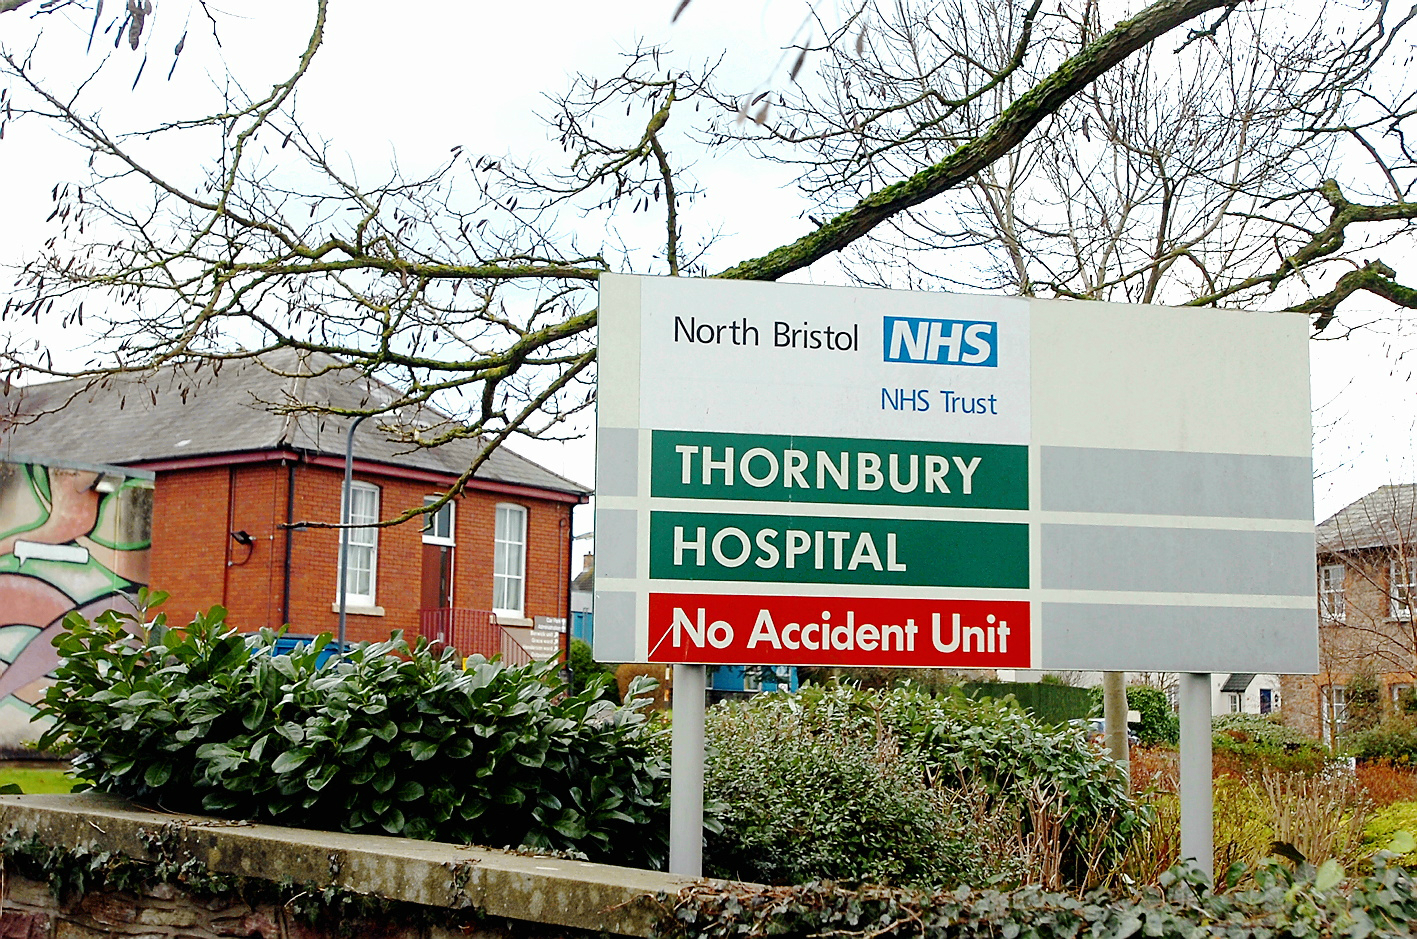 Sirona Care and Health has taken over running Thornbury Hospital's Henderson Ward